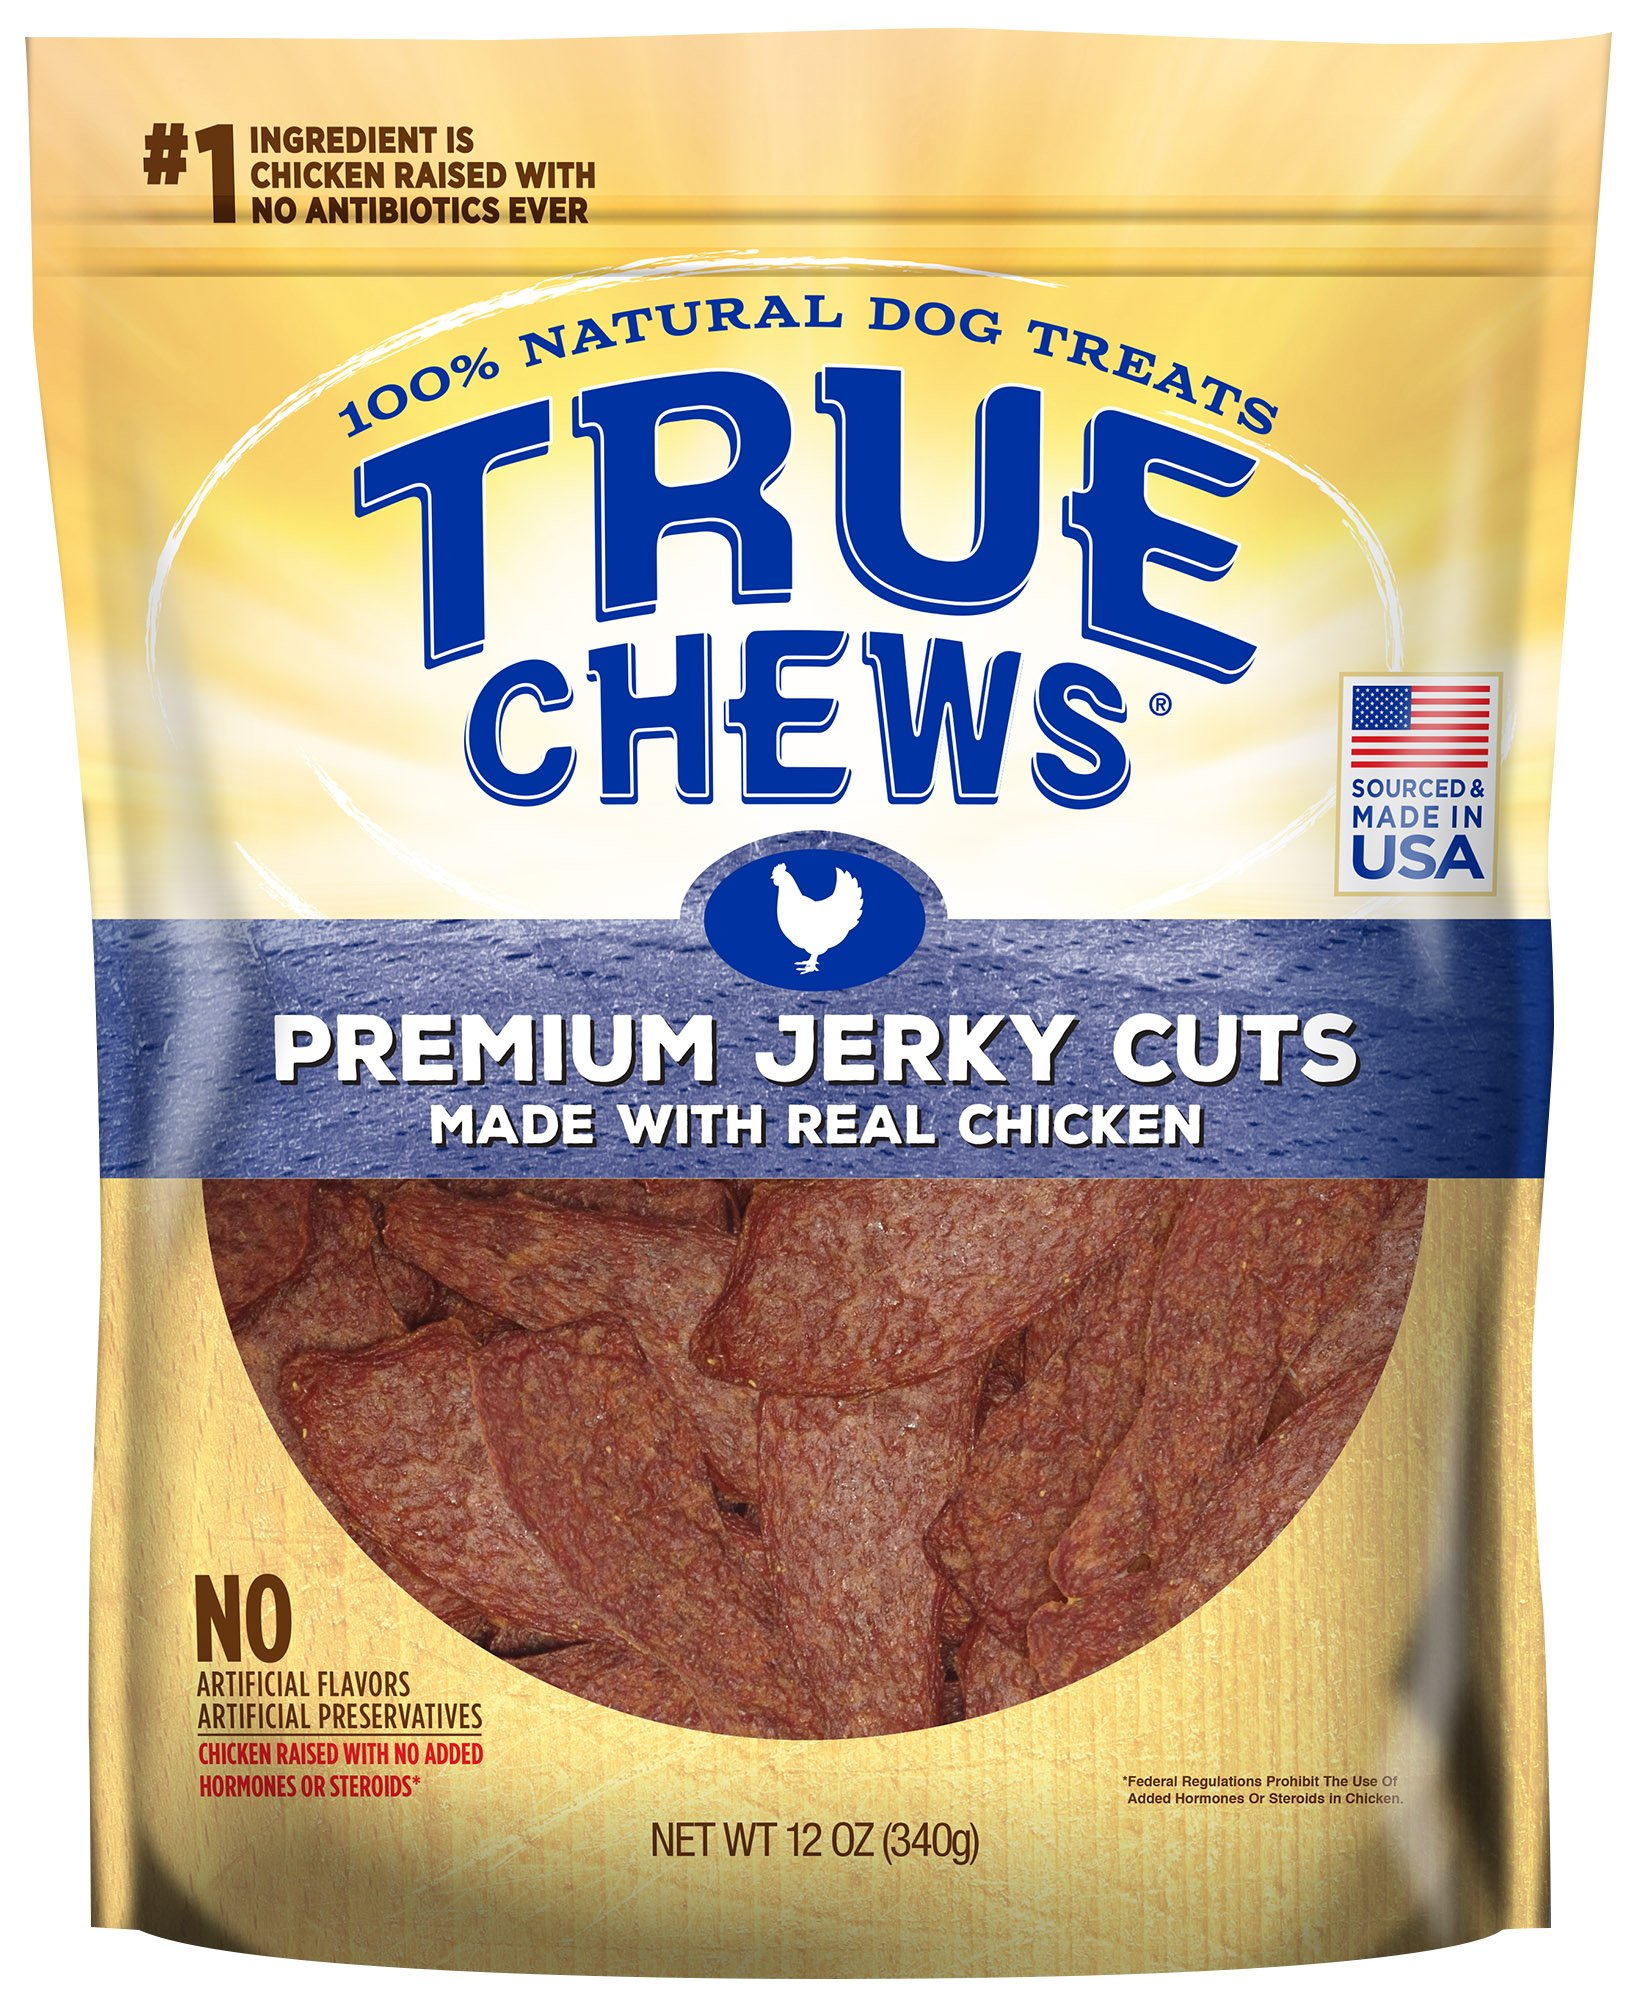 True Chews Tyson Pet Products Premium Jerky Cuts 12 Ounce Chicken by True Chews (Image #1)